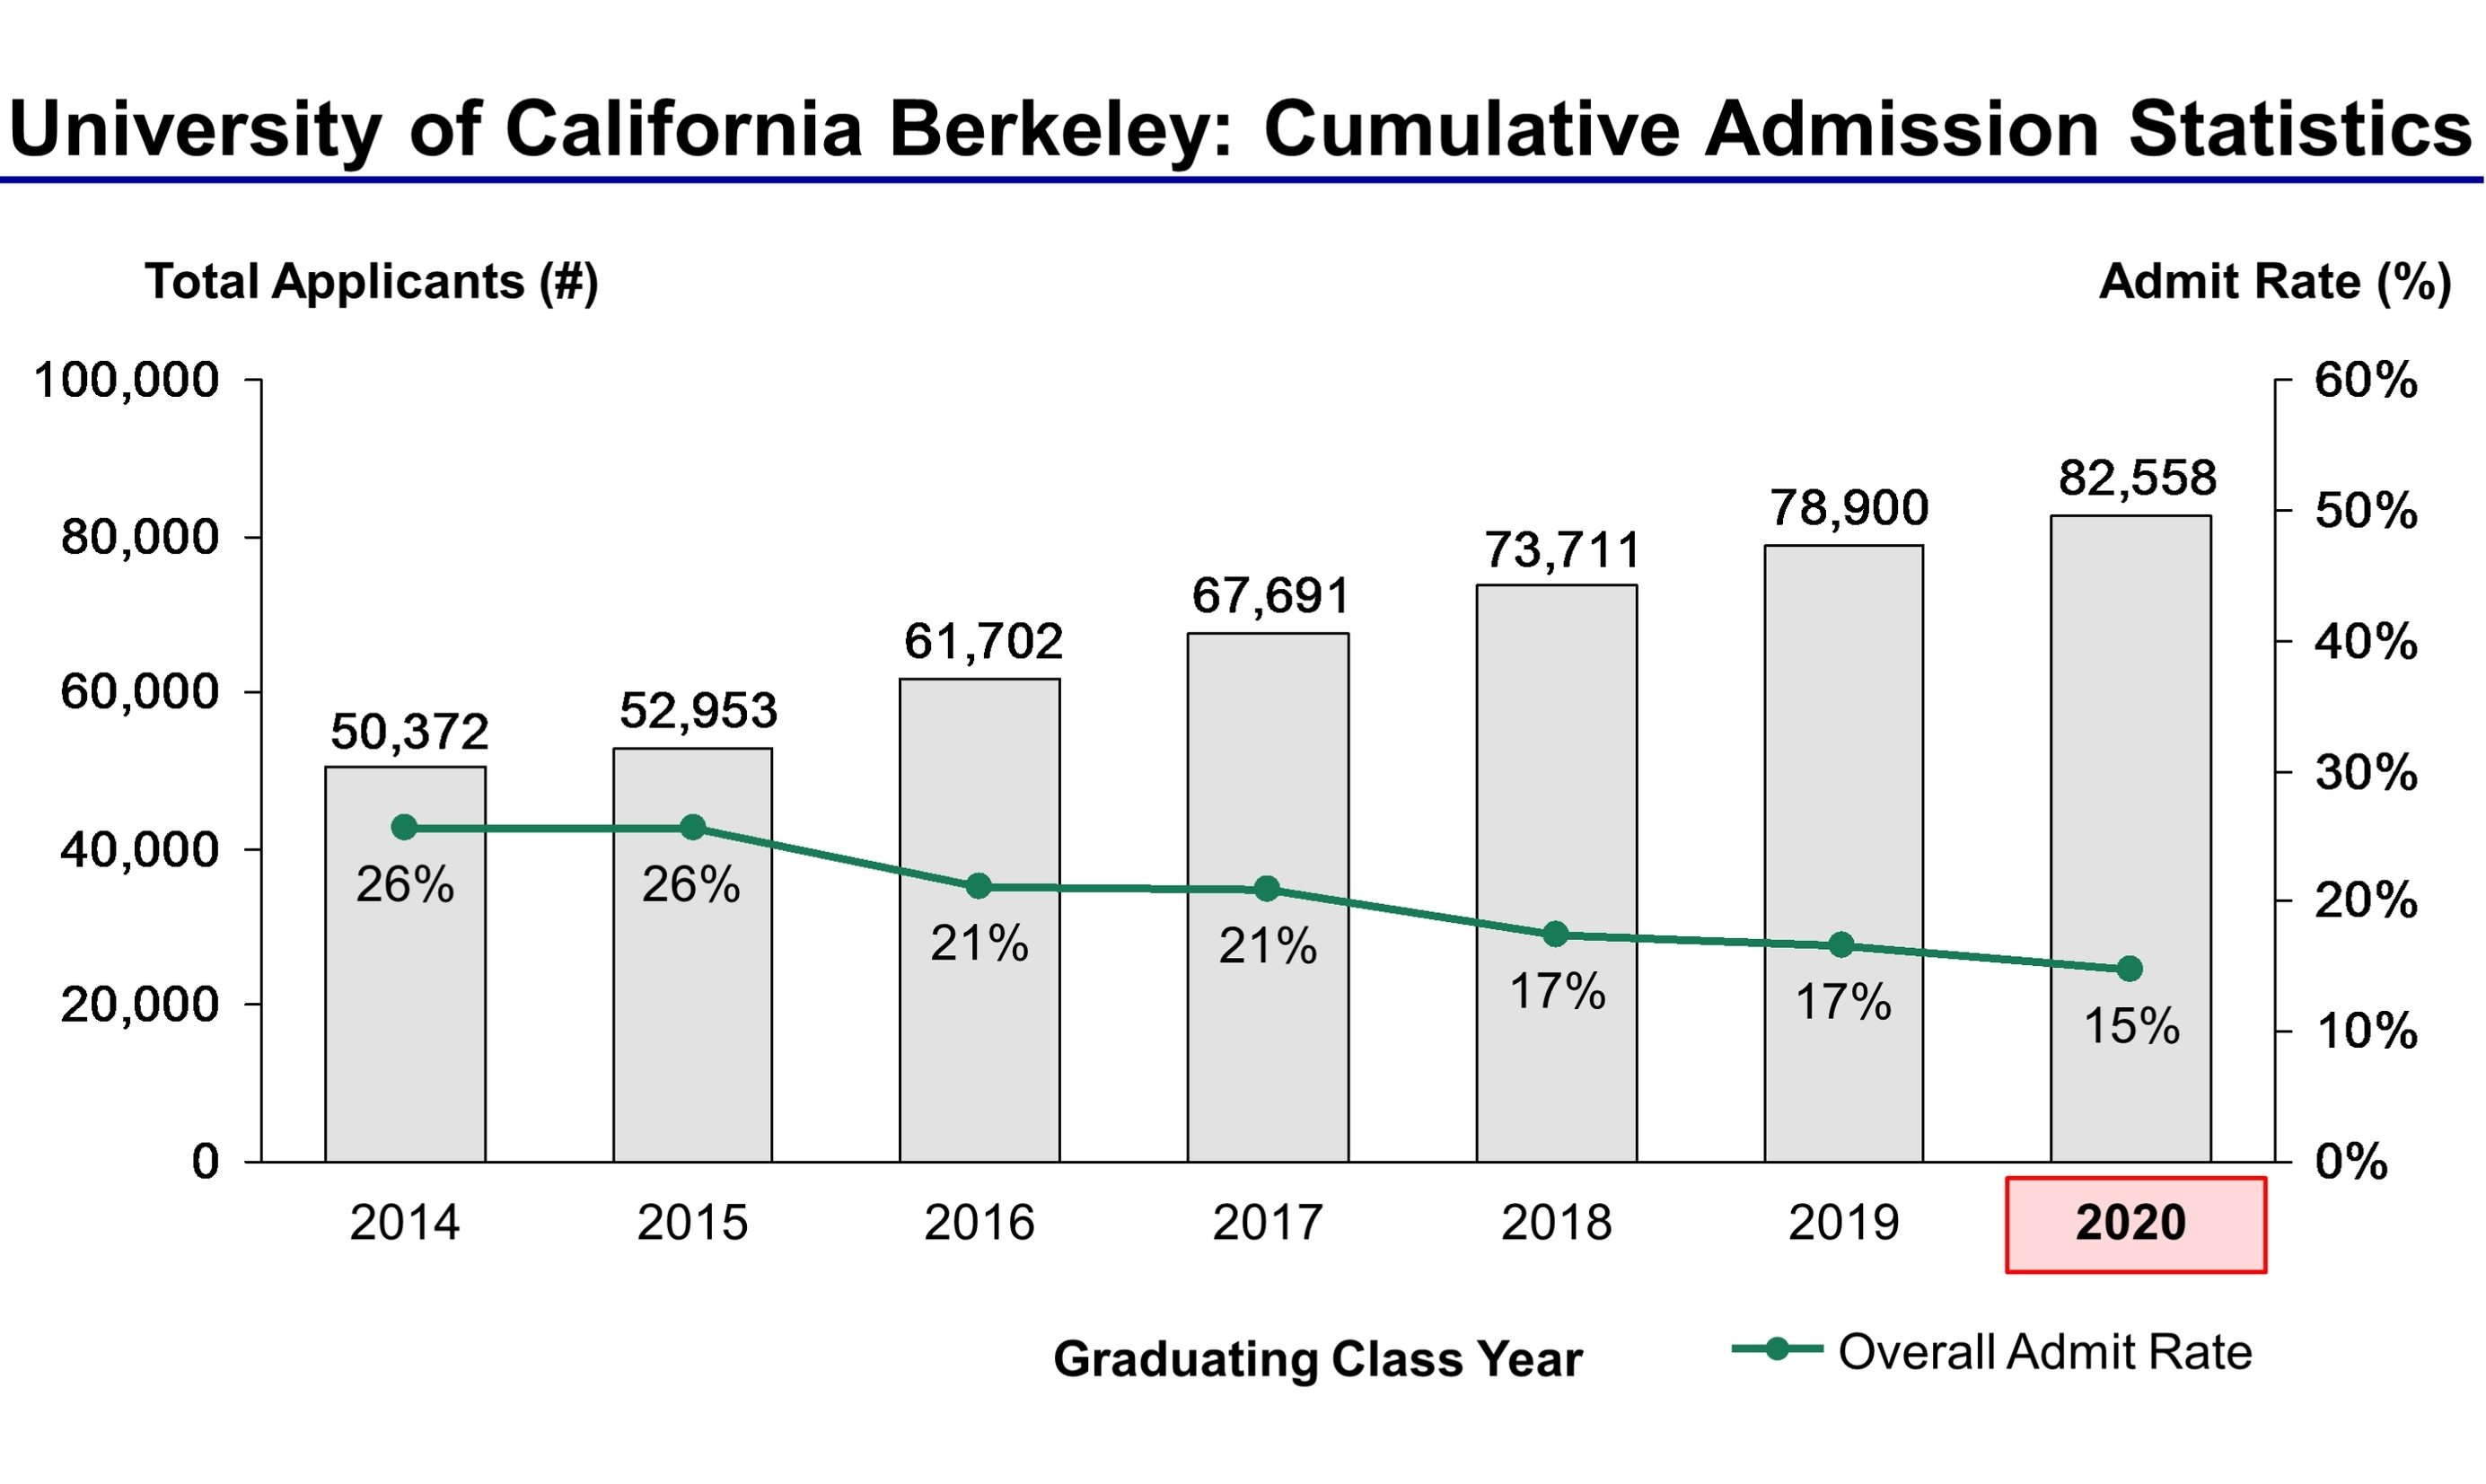 university of california berkeley acceptance rate and admission university of california berkeley admission statistics